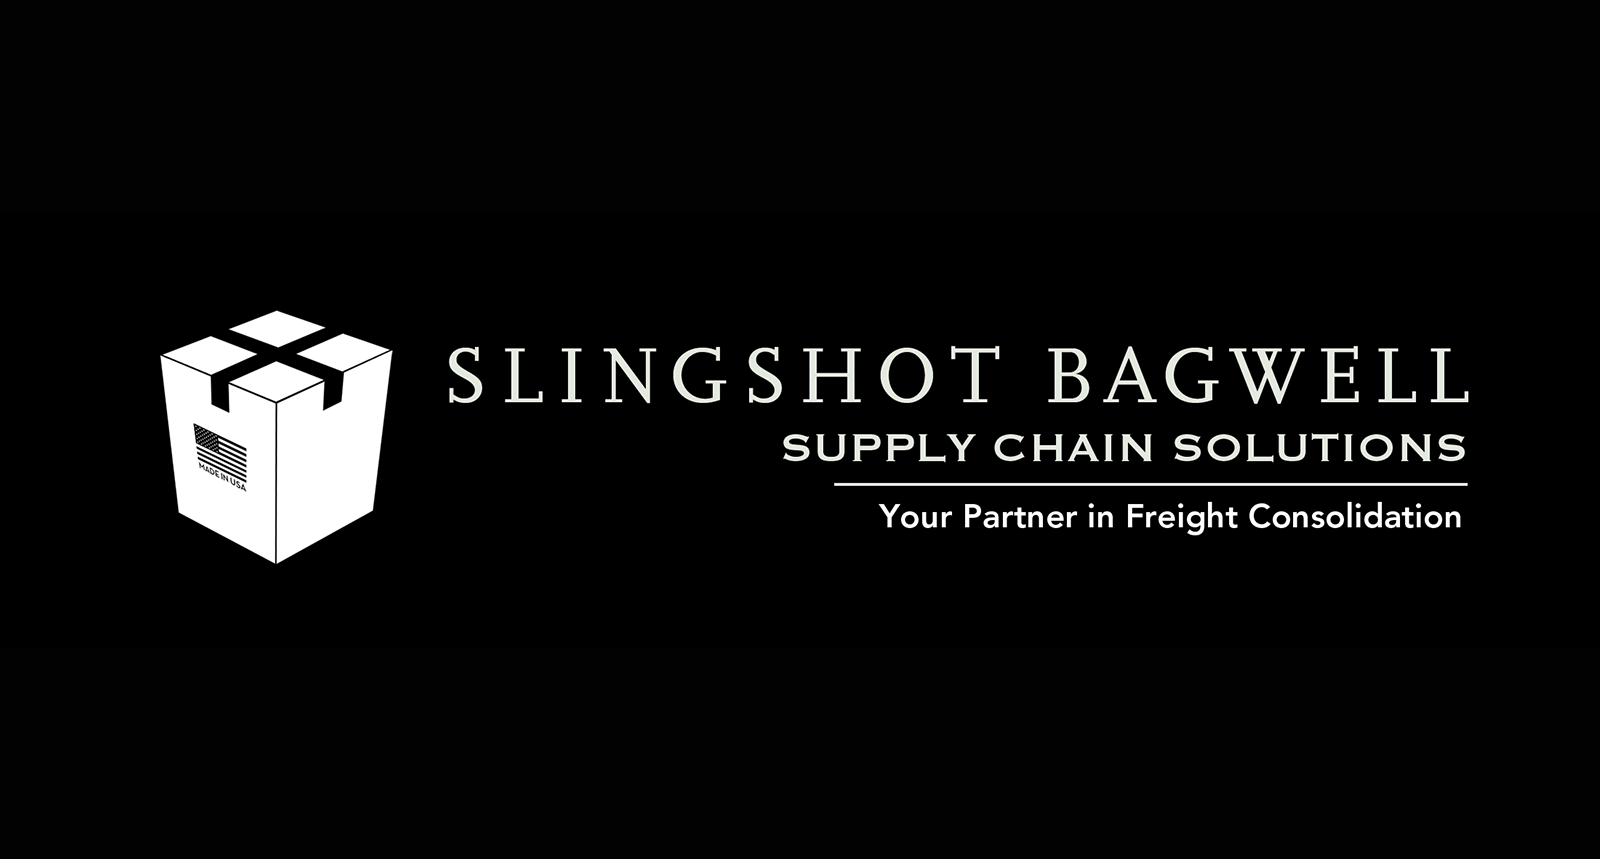 Slingshot Bagwell USA Freight Service